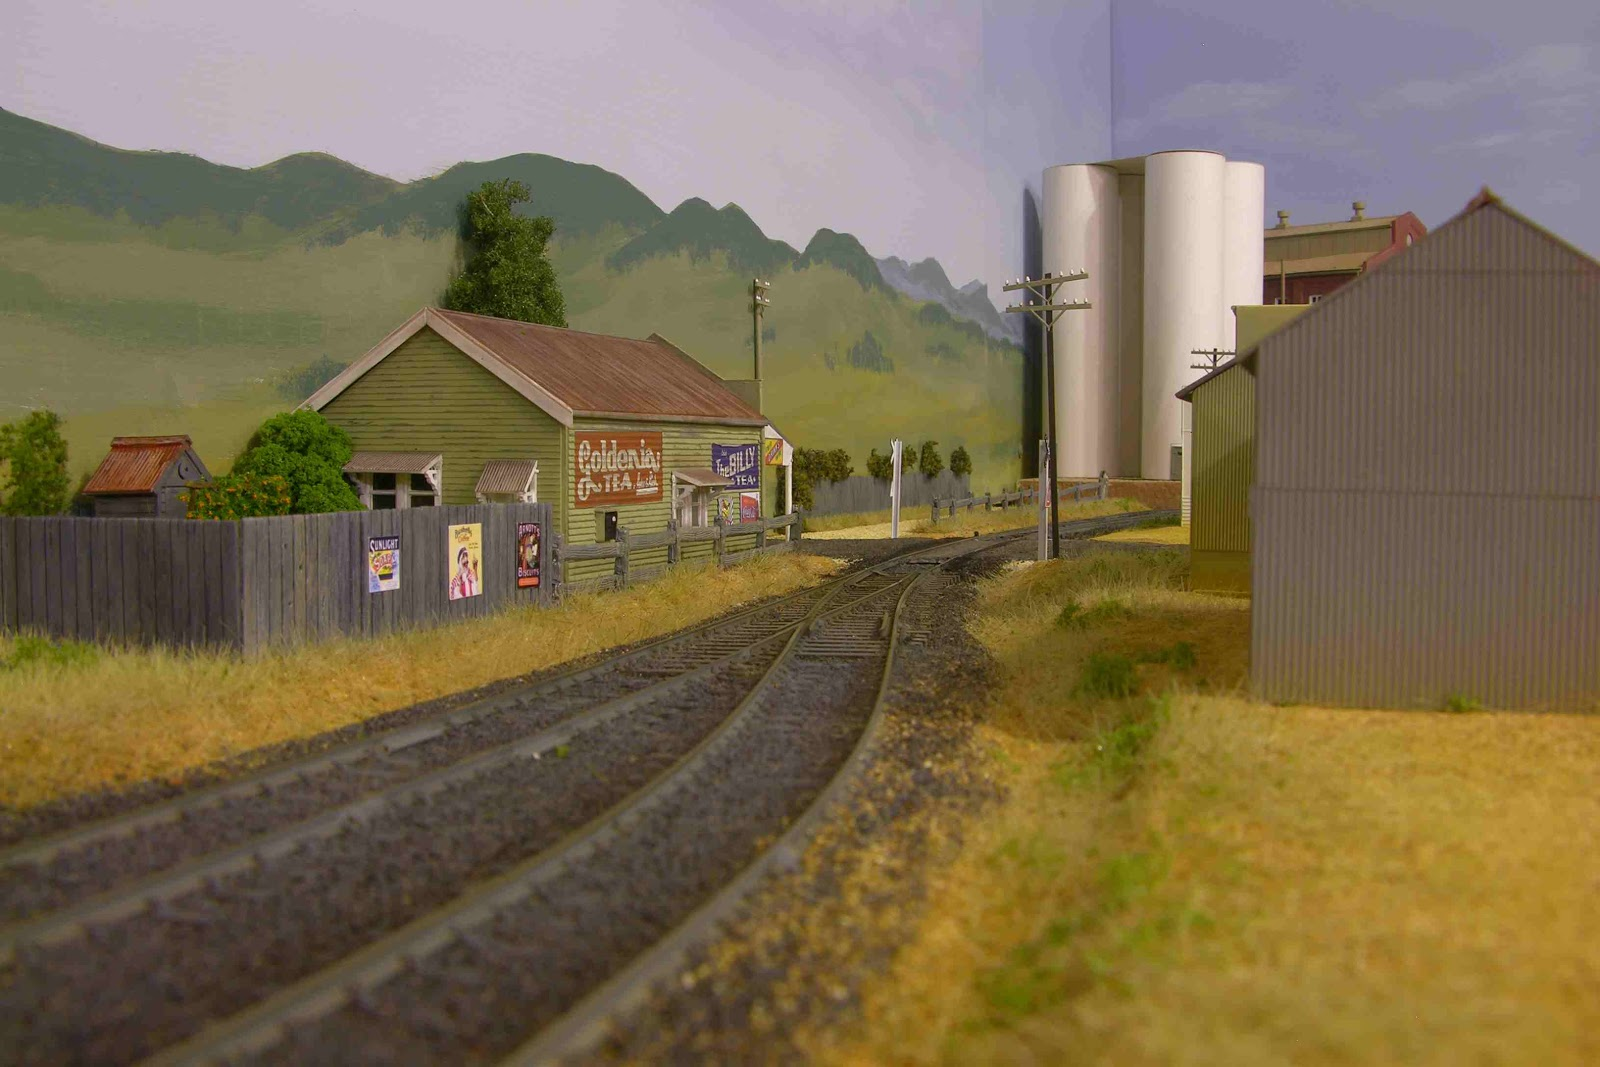 bylong level crossing and a backyard